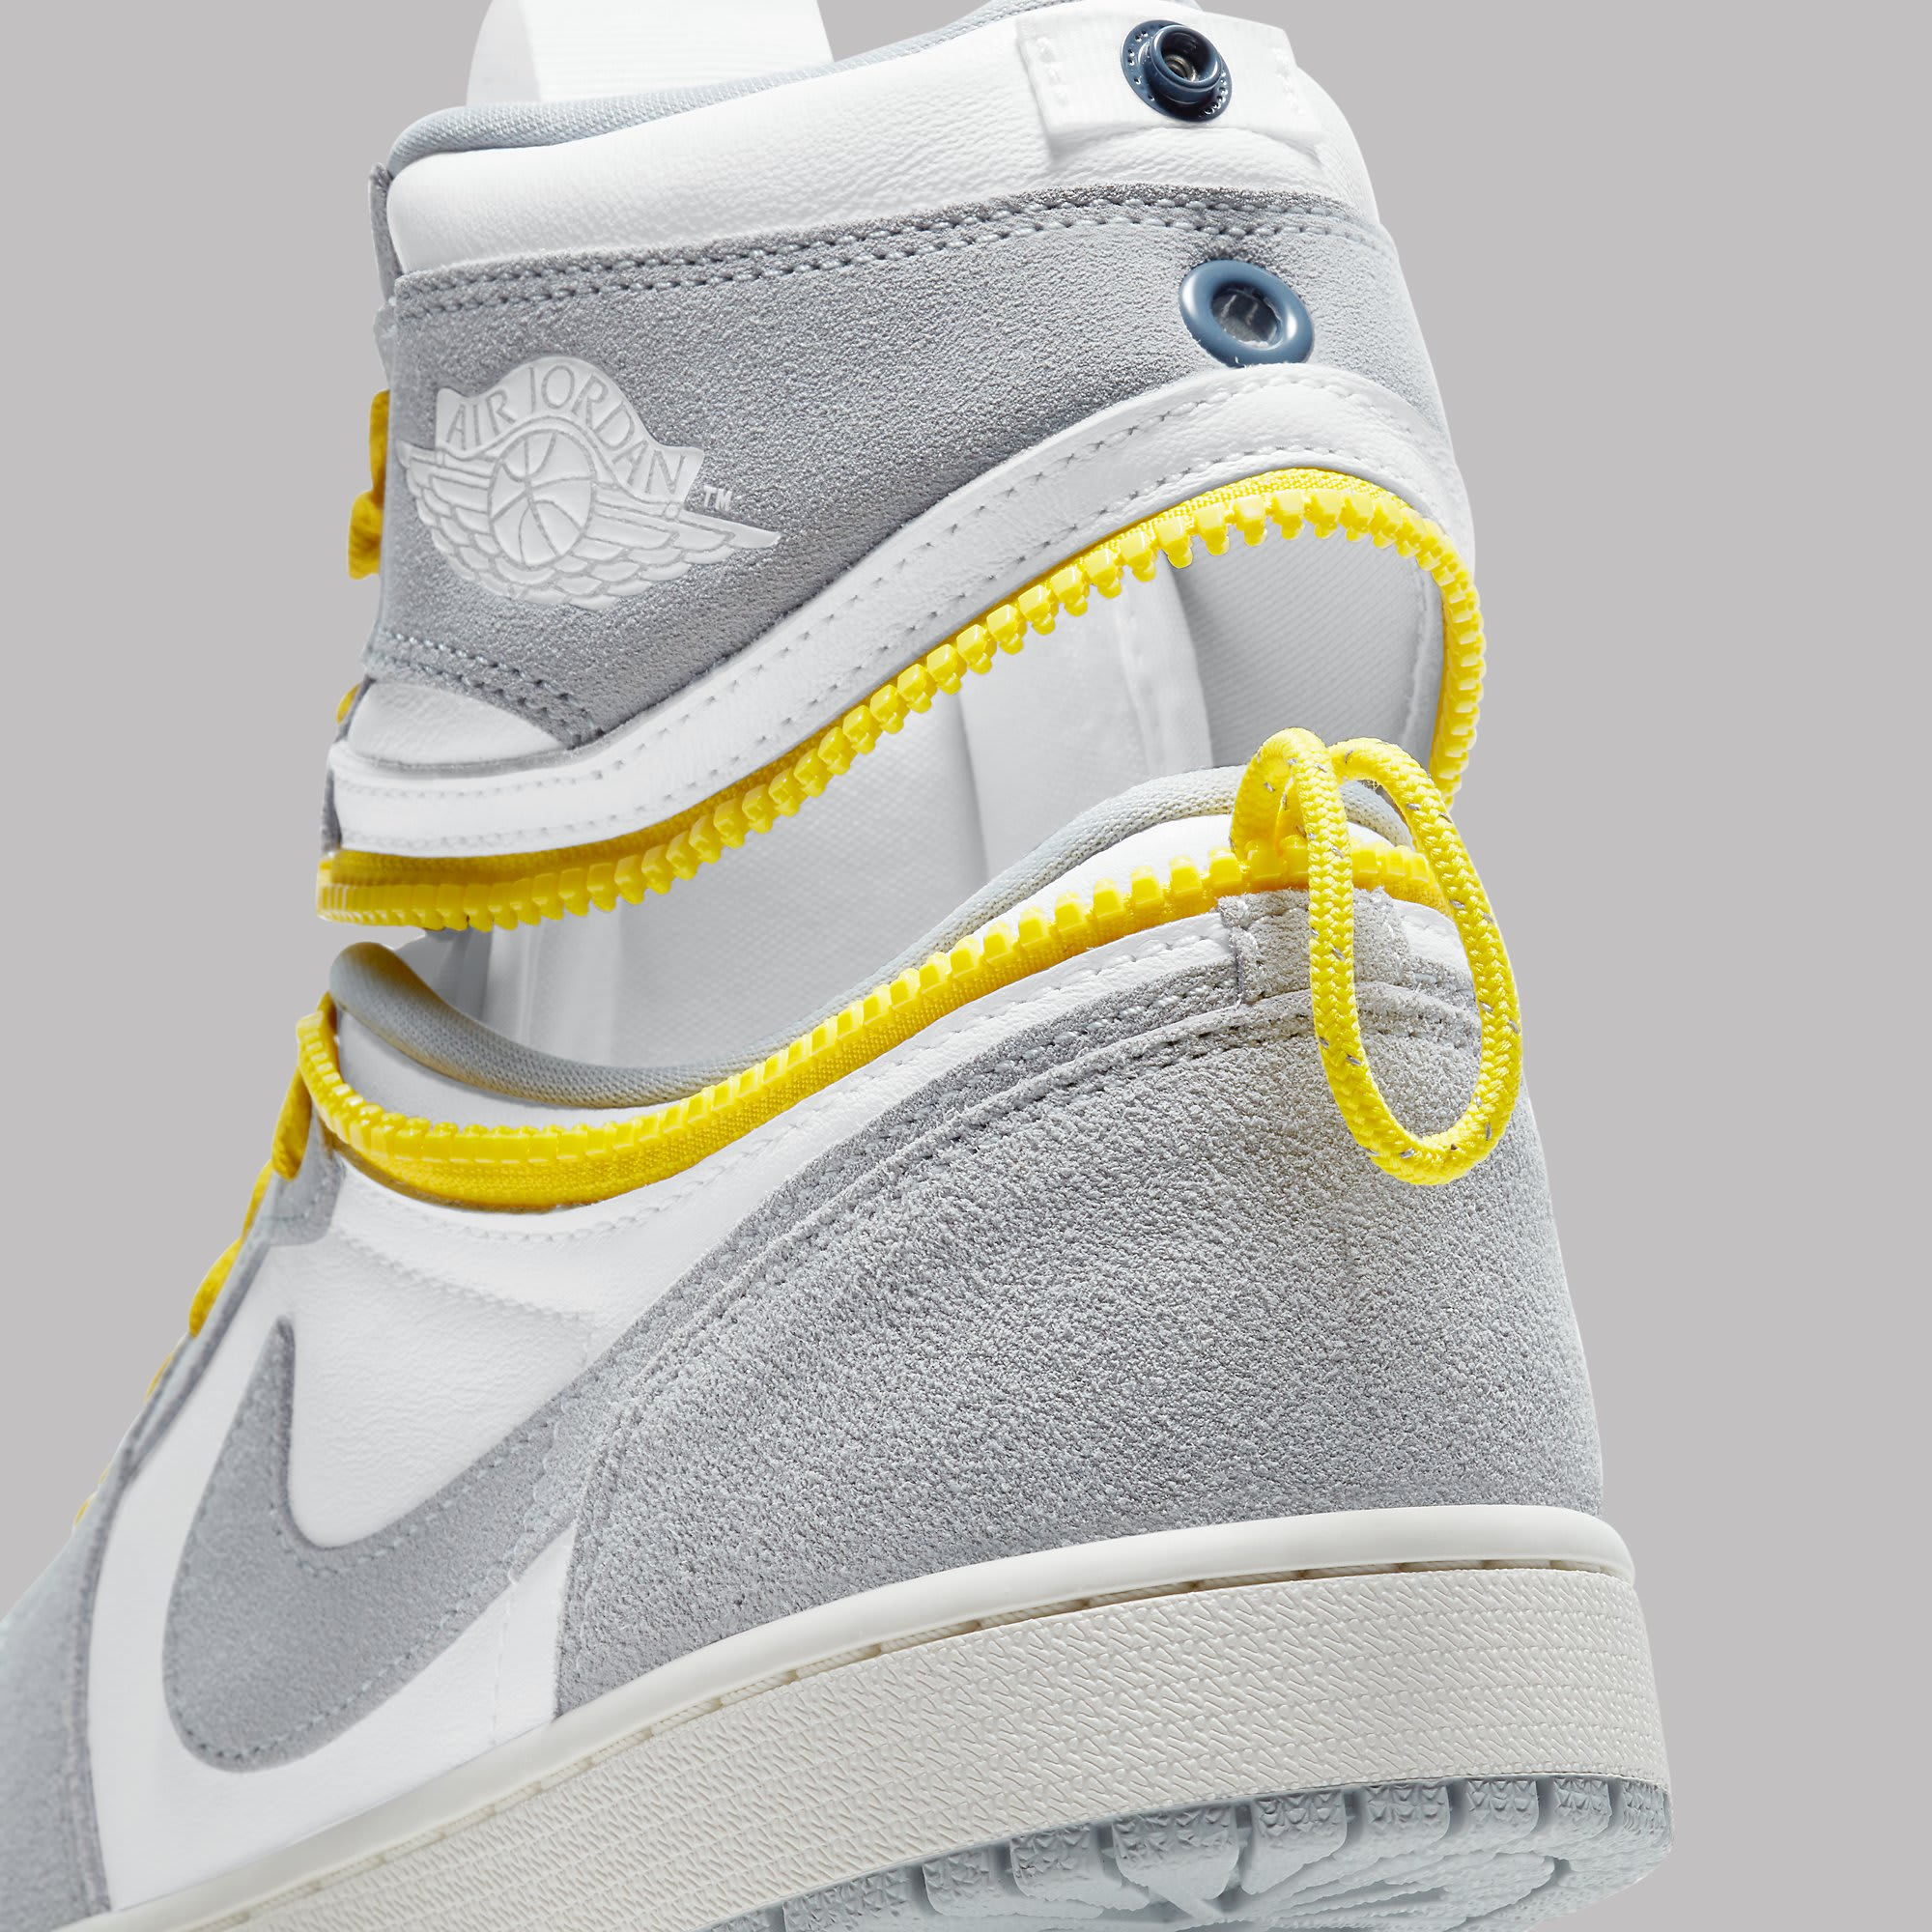 Air Jordan 1 High Switch White Light Smoke Grey Sail Tour Yellow Release Date CW6576-100 Unzipped